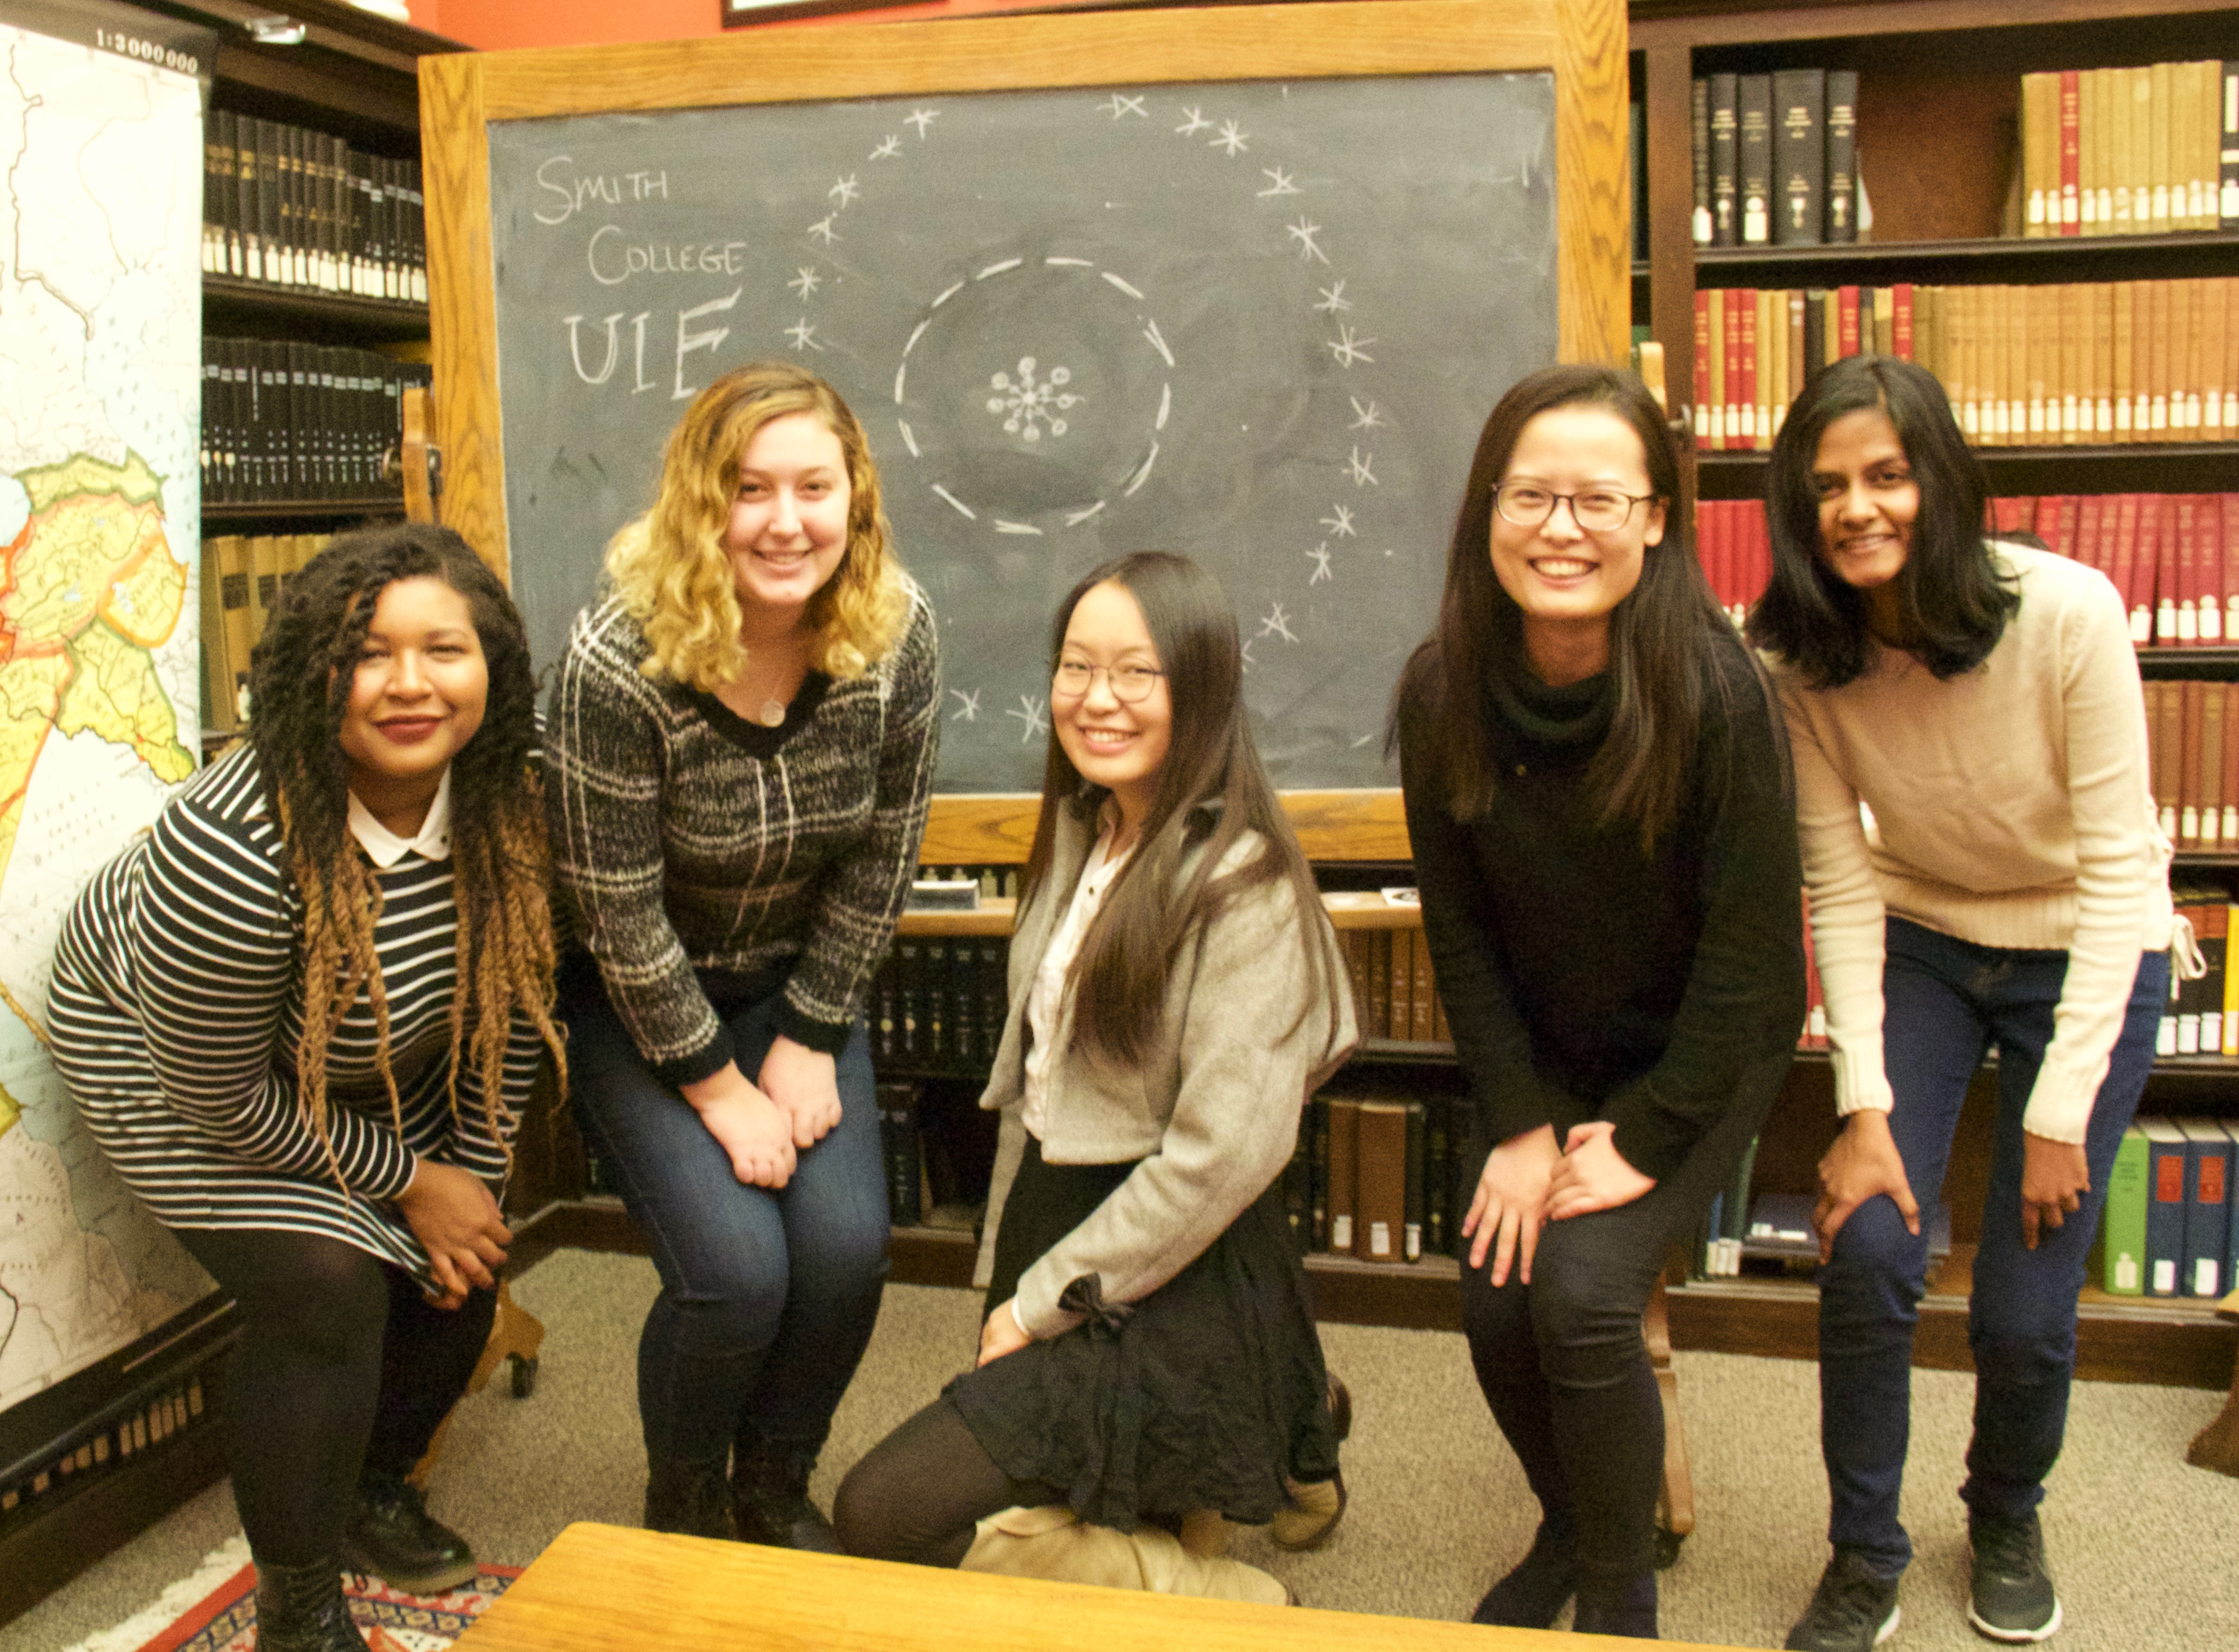 From left to right: University Innovation Fellows - Jessica Innis, Amanda Lavond, Yi Wang, Lingxuan Li, and Mandira Marambe.